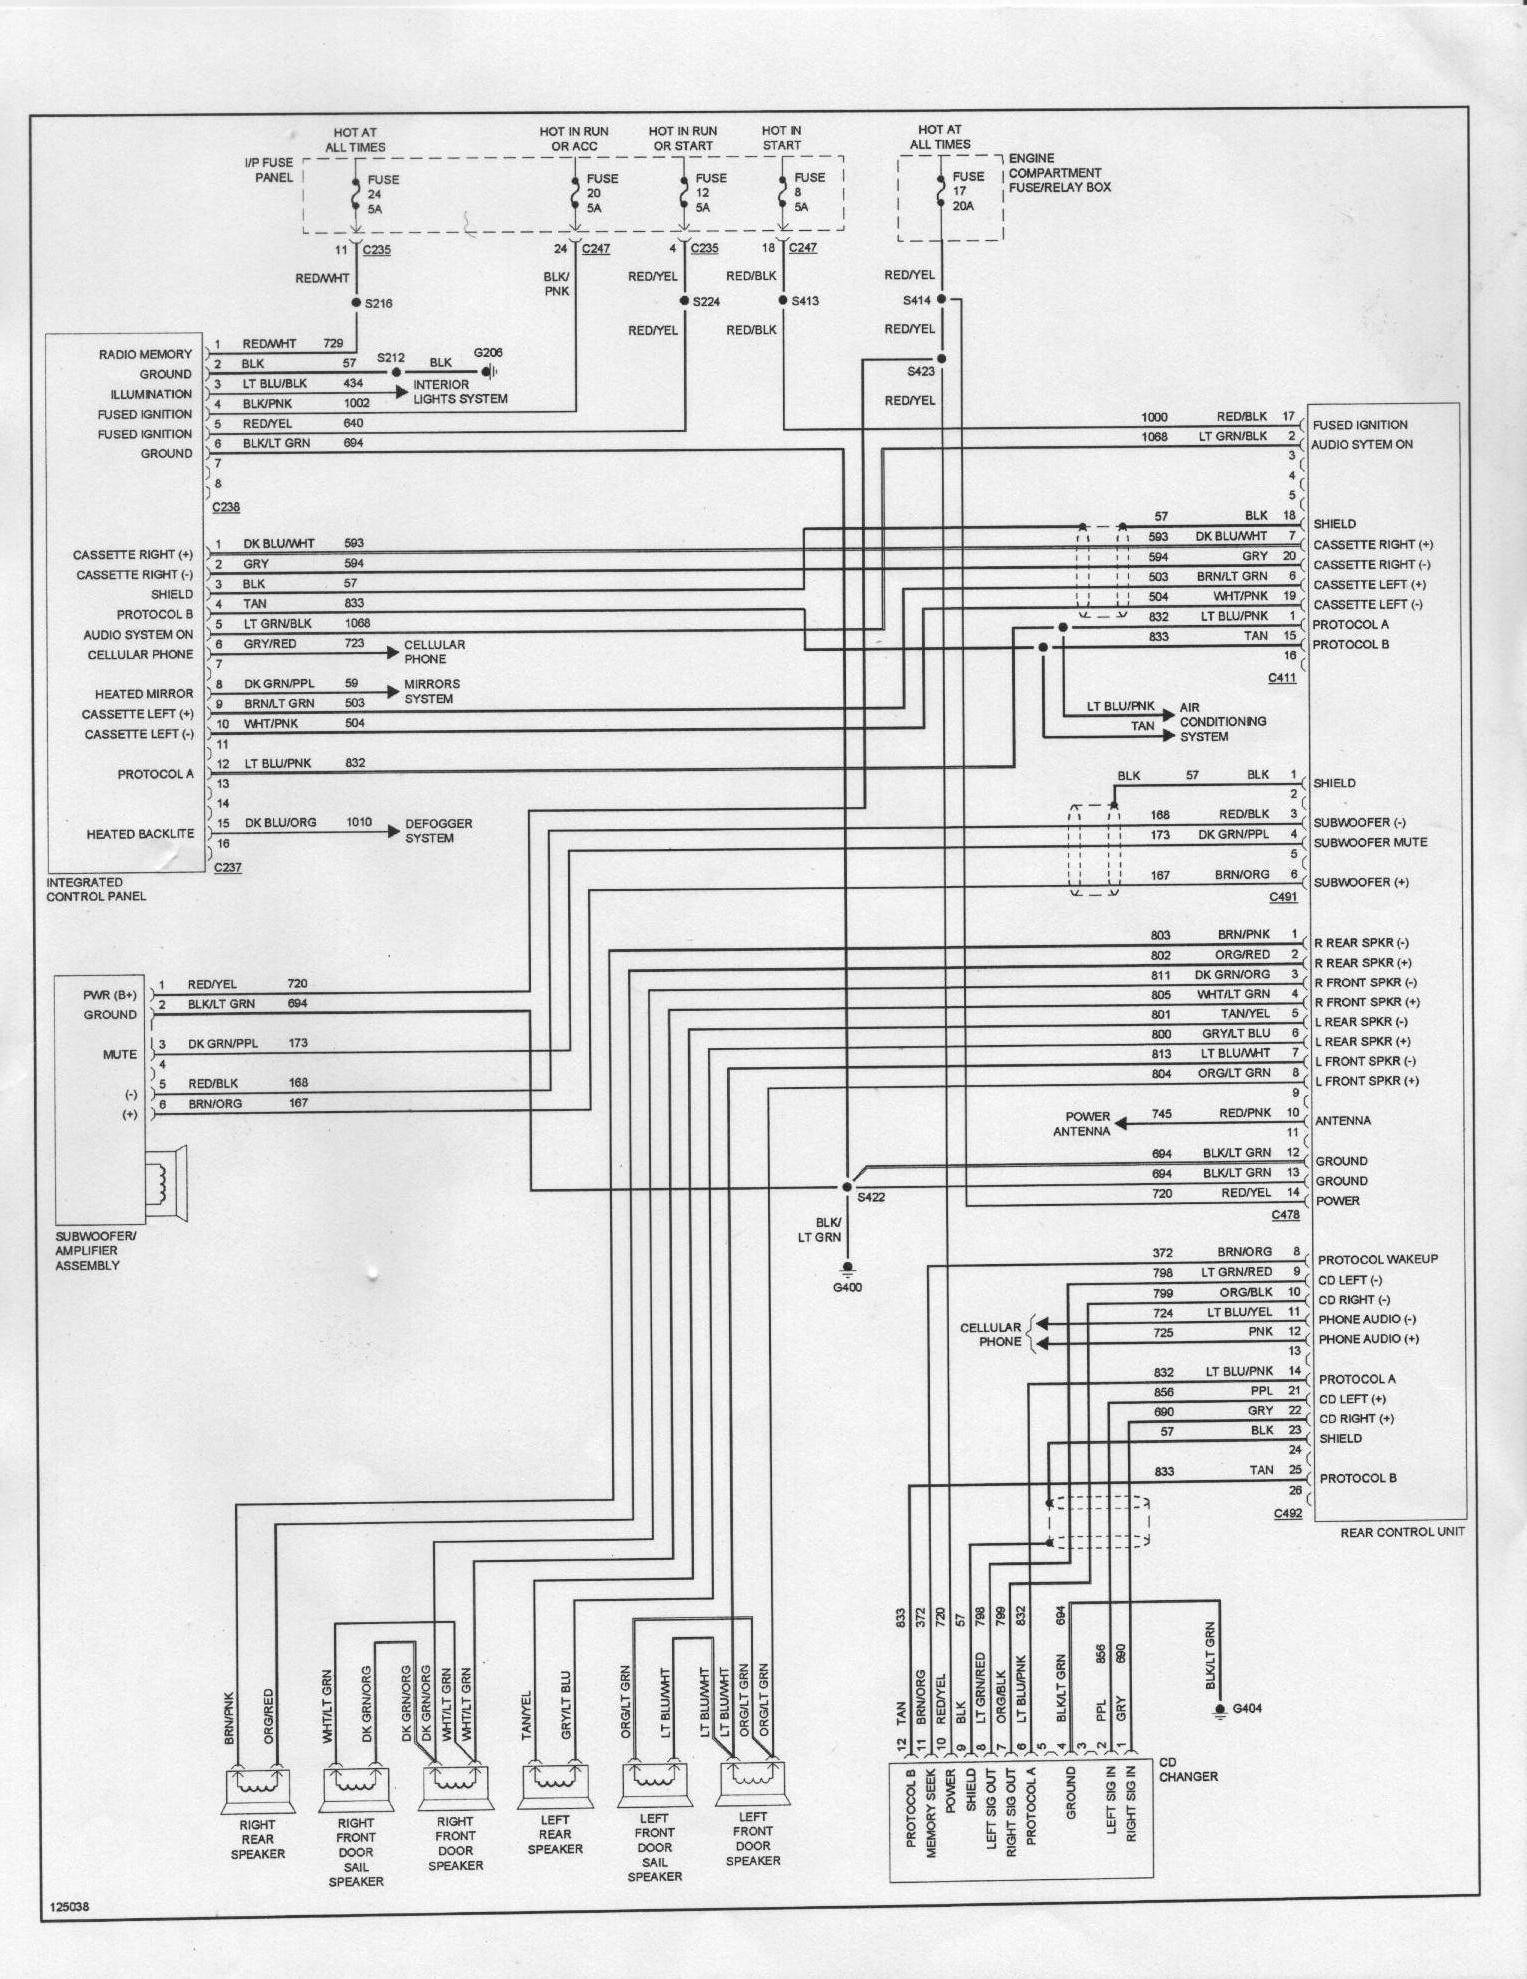 wiring diagram for scosche – readingrat, Wiring diagram